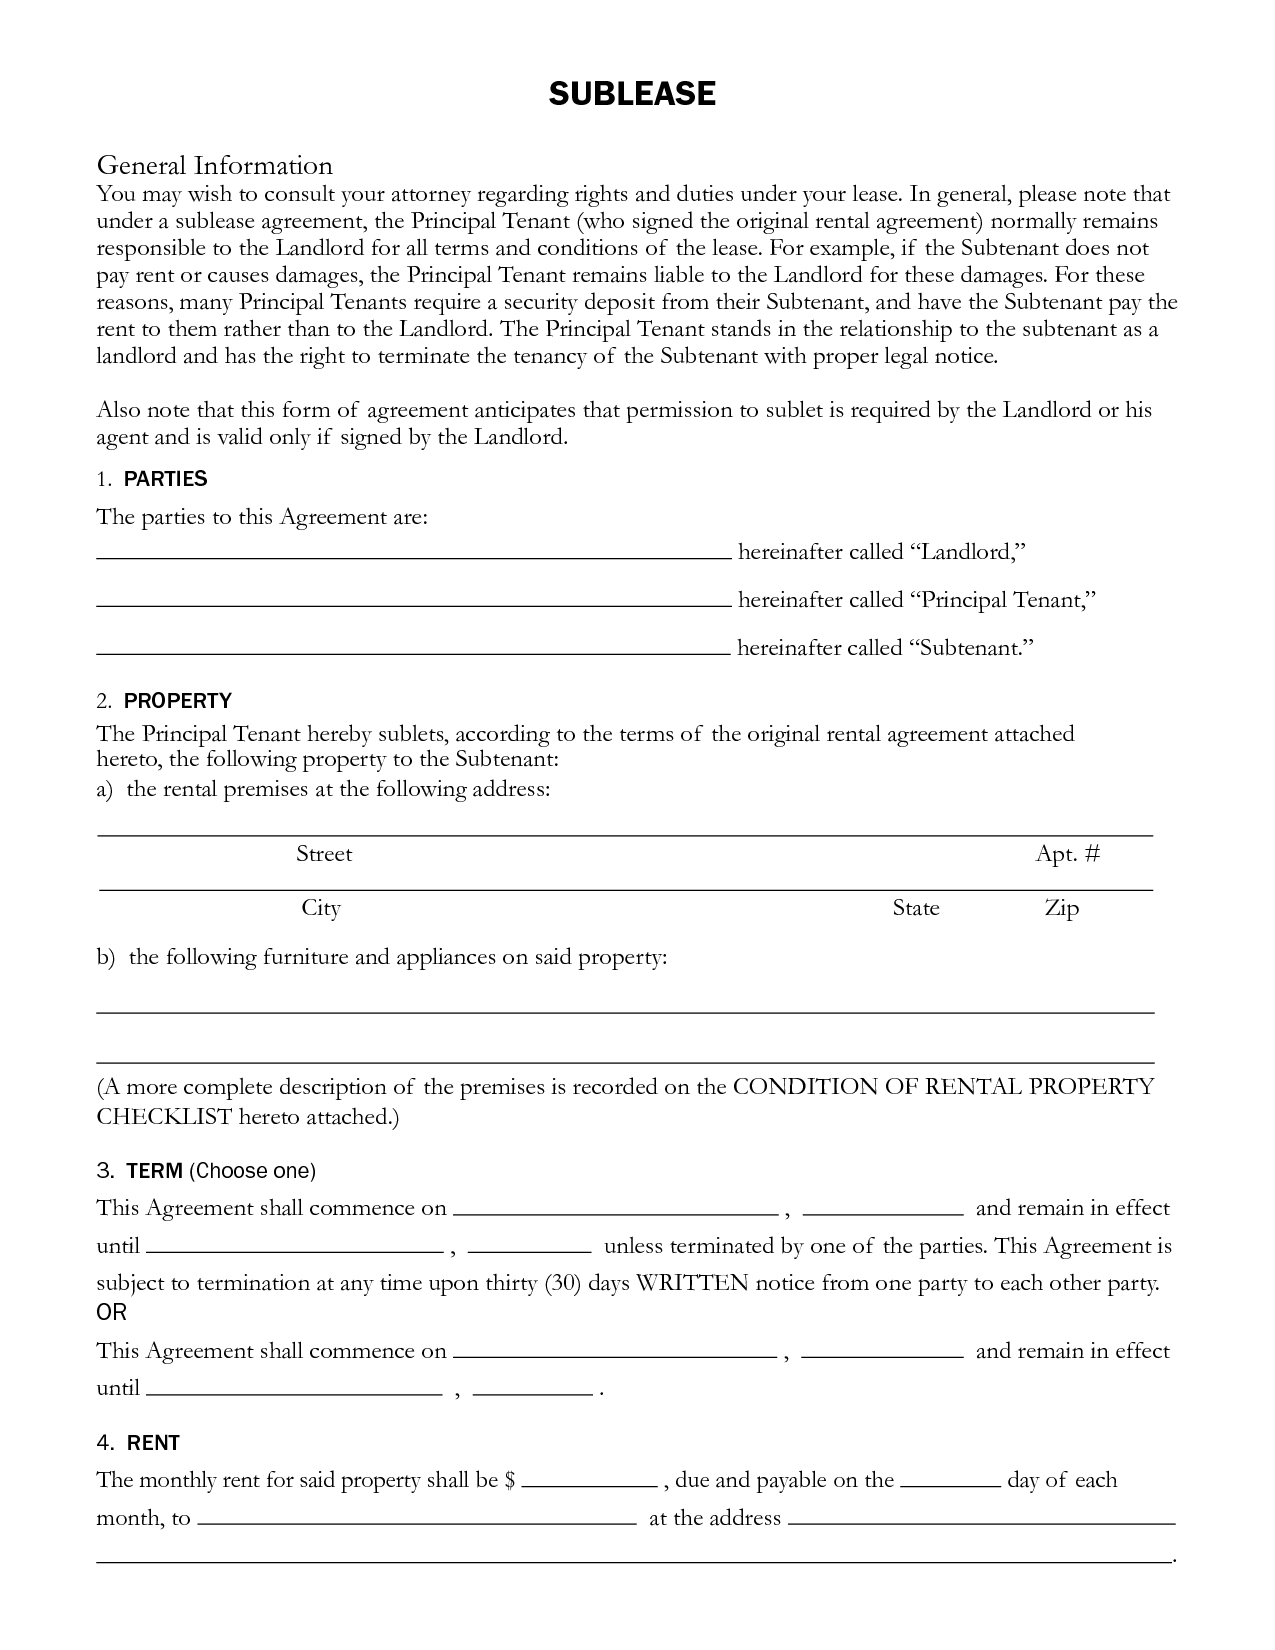 Sublet Rental Agreement SUBLEASE General Information by ayj58676 – Sublet Agreement Template